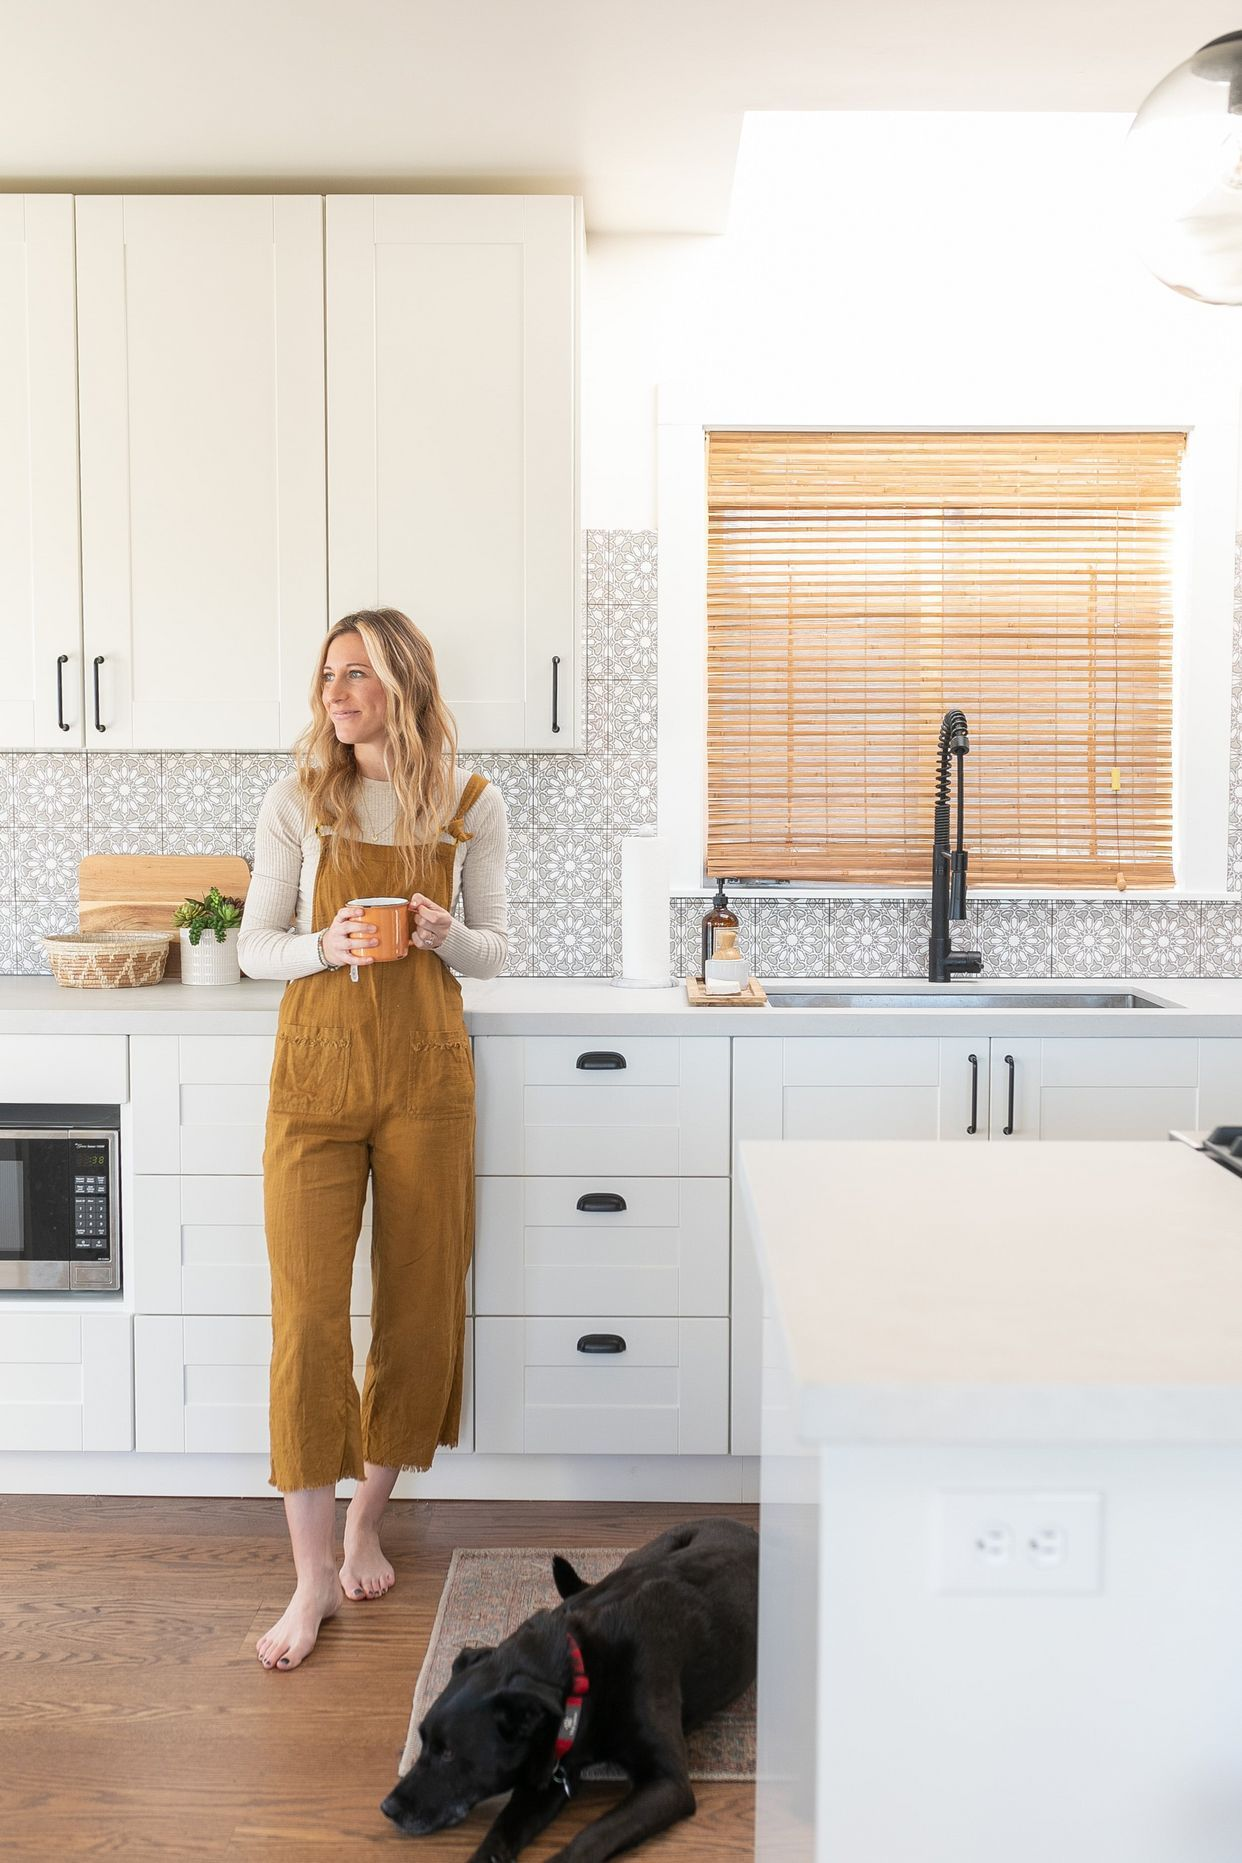 Are Ikea Kitchen Cabinets Worth The Savings A Very Honest Review One Year Later Emily Henderson In 2020 Ikea Kitchen Ikea Kitchen Cabinets Quality Kitchen Cabinets